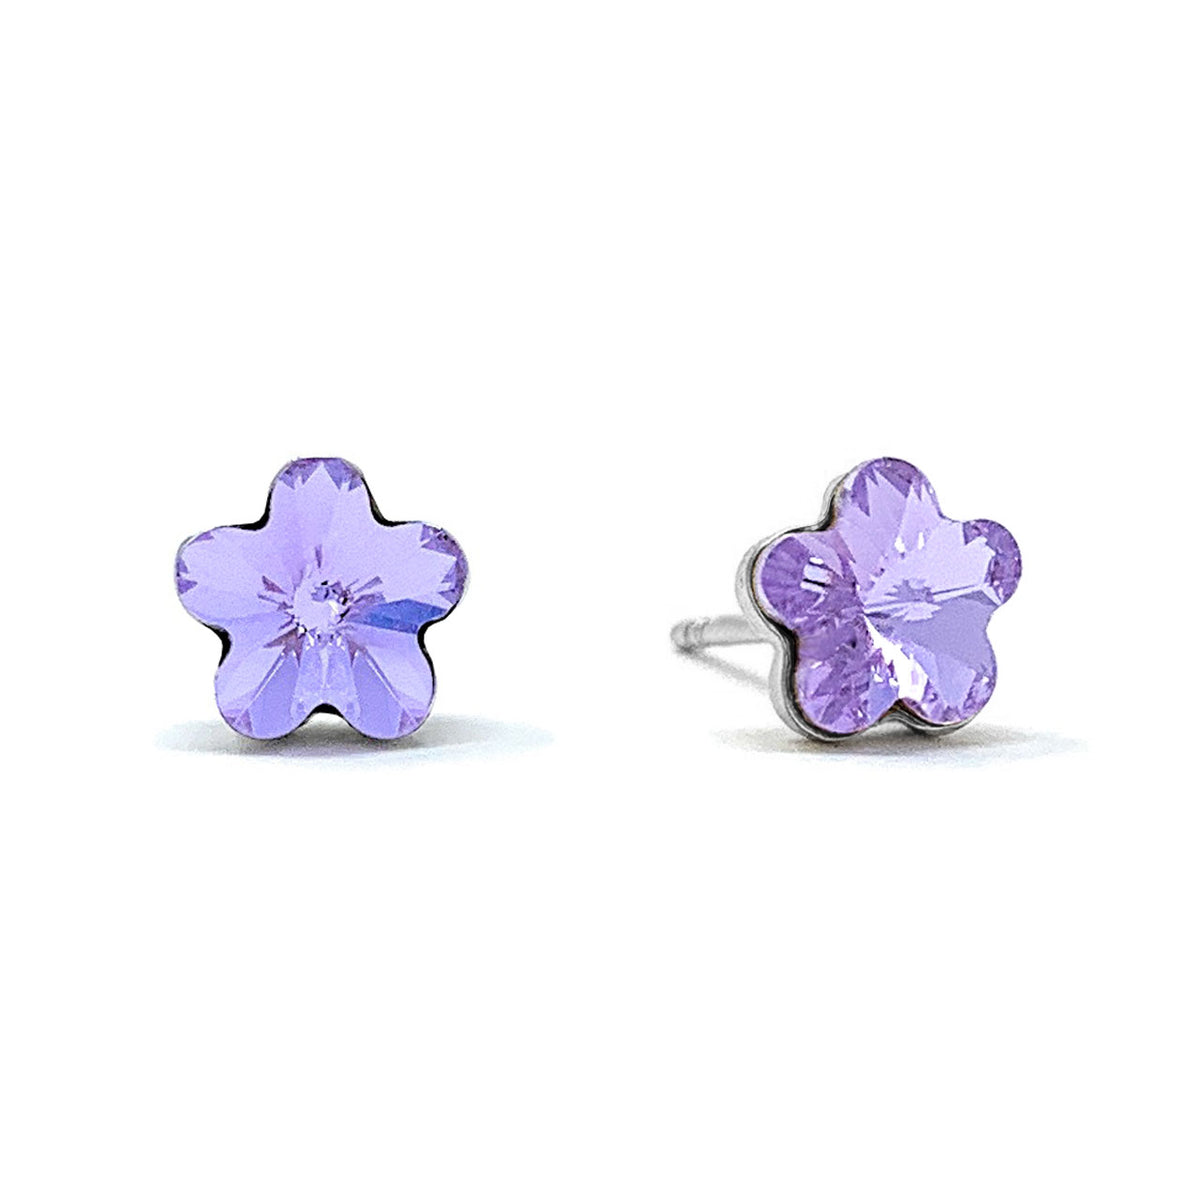 Anna Small Stud Earrings with Purple Violet Flower Crystals from Swarovski Silver Toned Rhodium Plated - Ed Heart